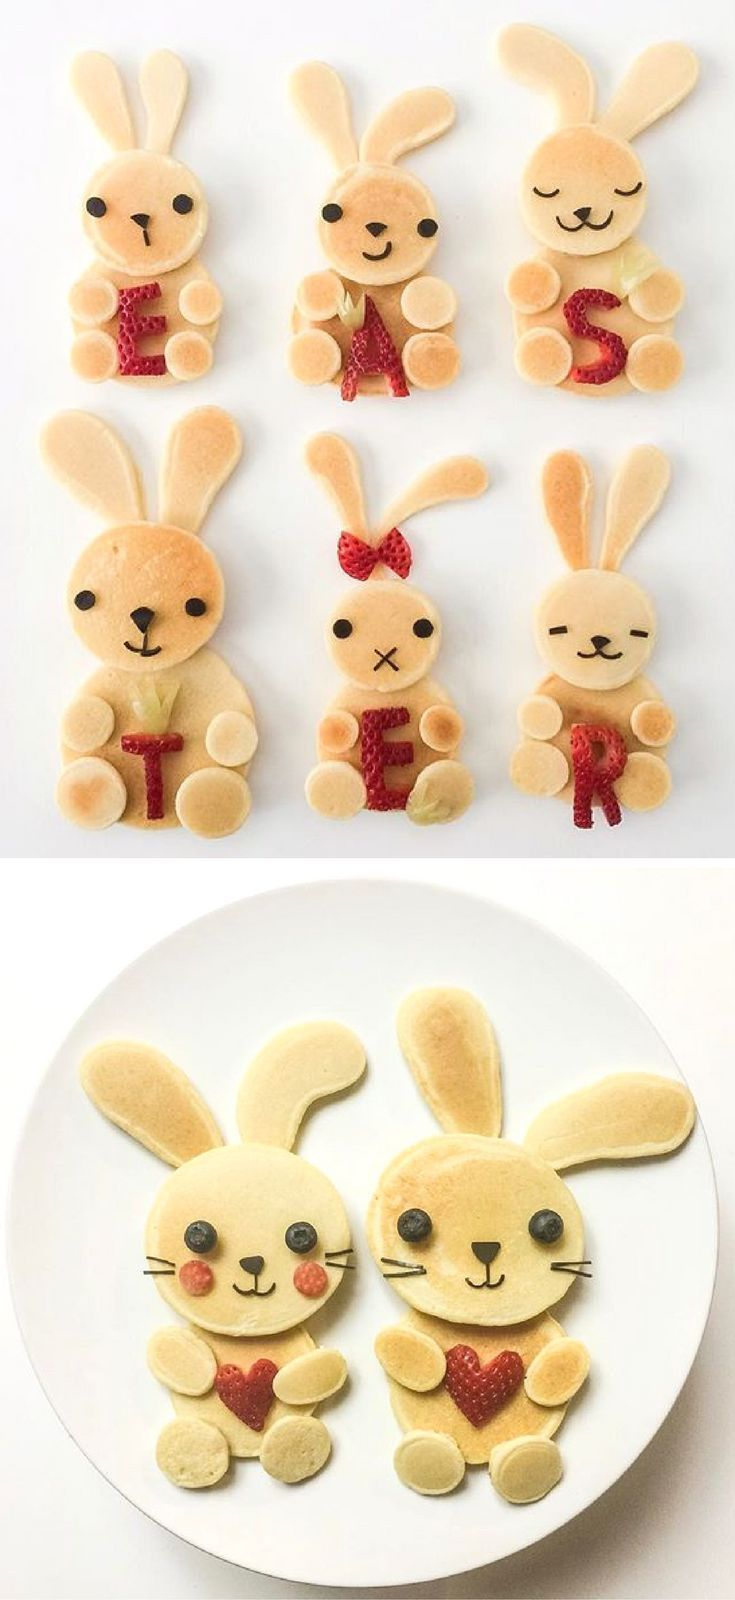 Fun Easter Food Ideas for Kids | Creative Easter themed recipes to make for your children for Breakfast (bunny pancakes!), Brunch, Lunch or a Healthy Snack. Plus, sweet treats and desserts that are perfect for your child's school class party or just for fun - super cute yet easy including cakes, bark, brownies, peeps, bunnies, lambs, mini eggs, rice krispies and more! Head to http://whatmomslove.com for all the recipes.